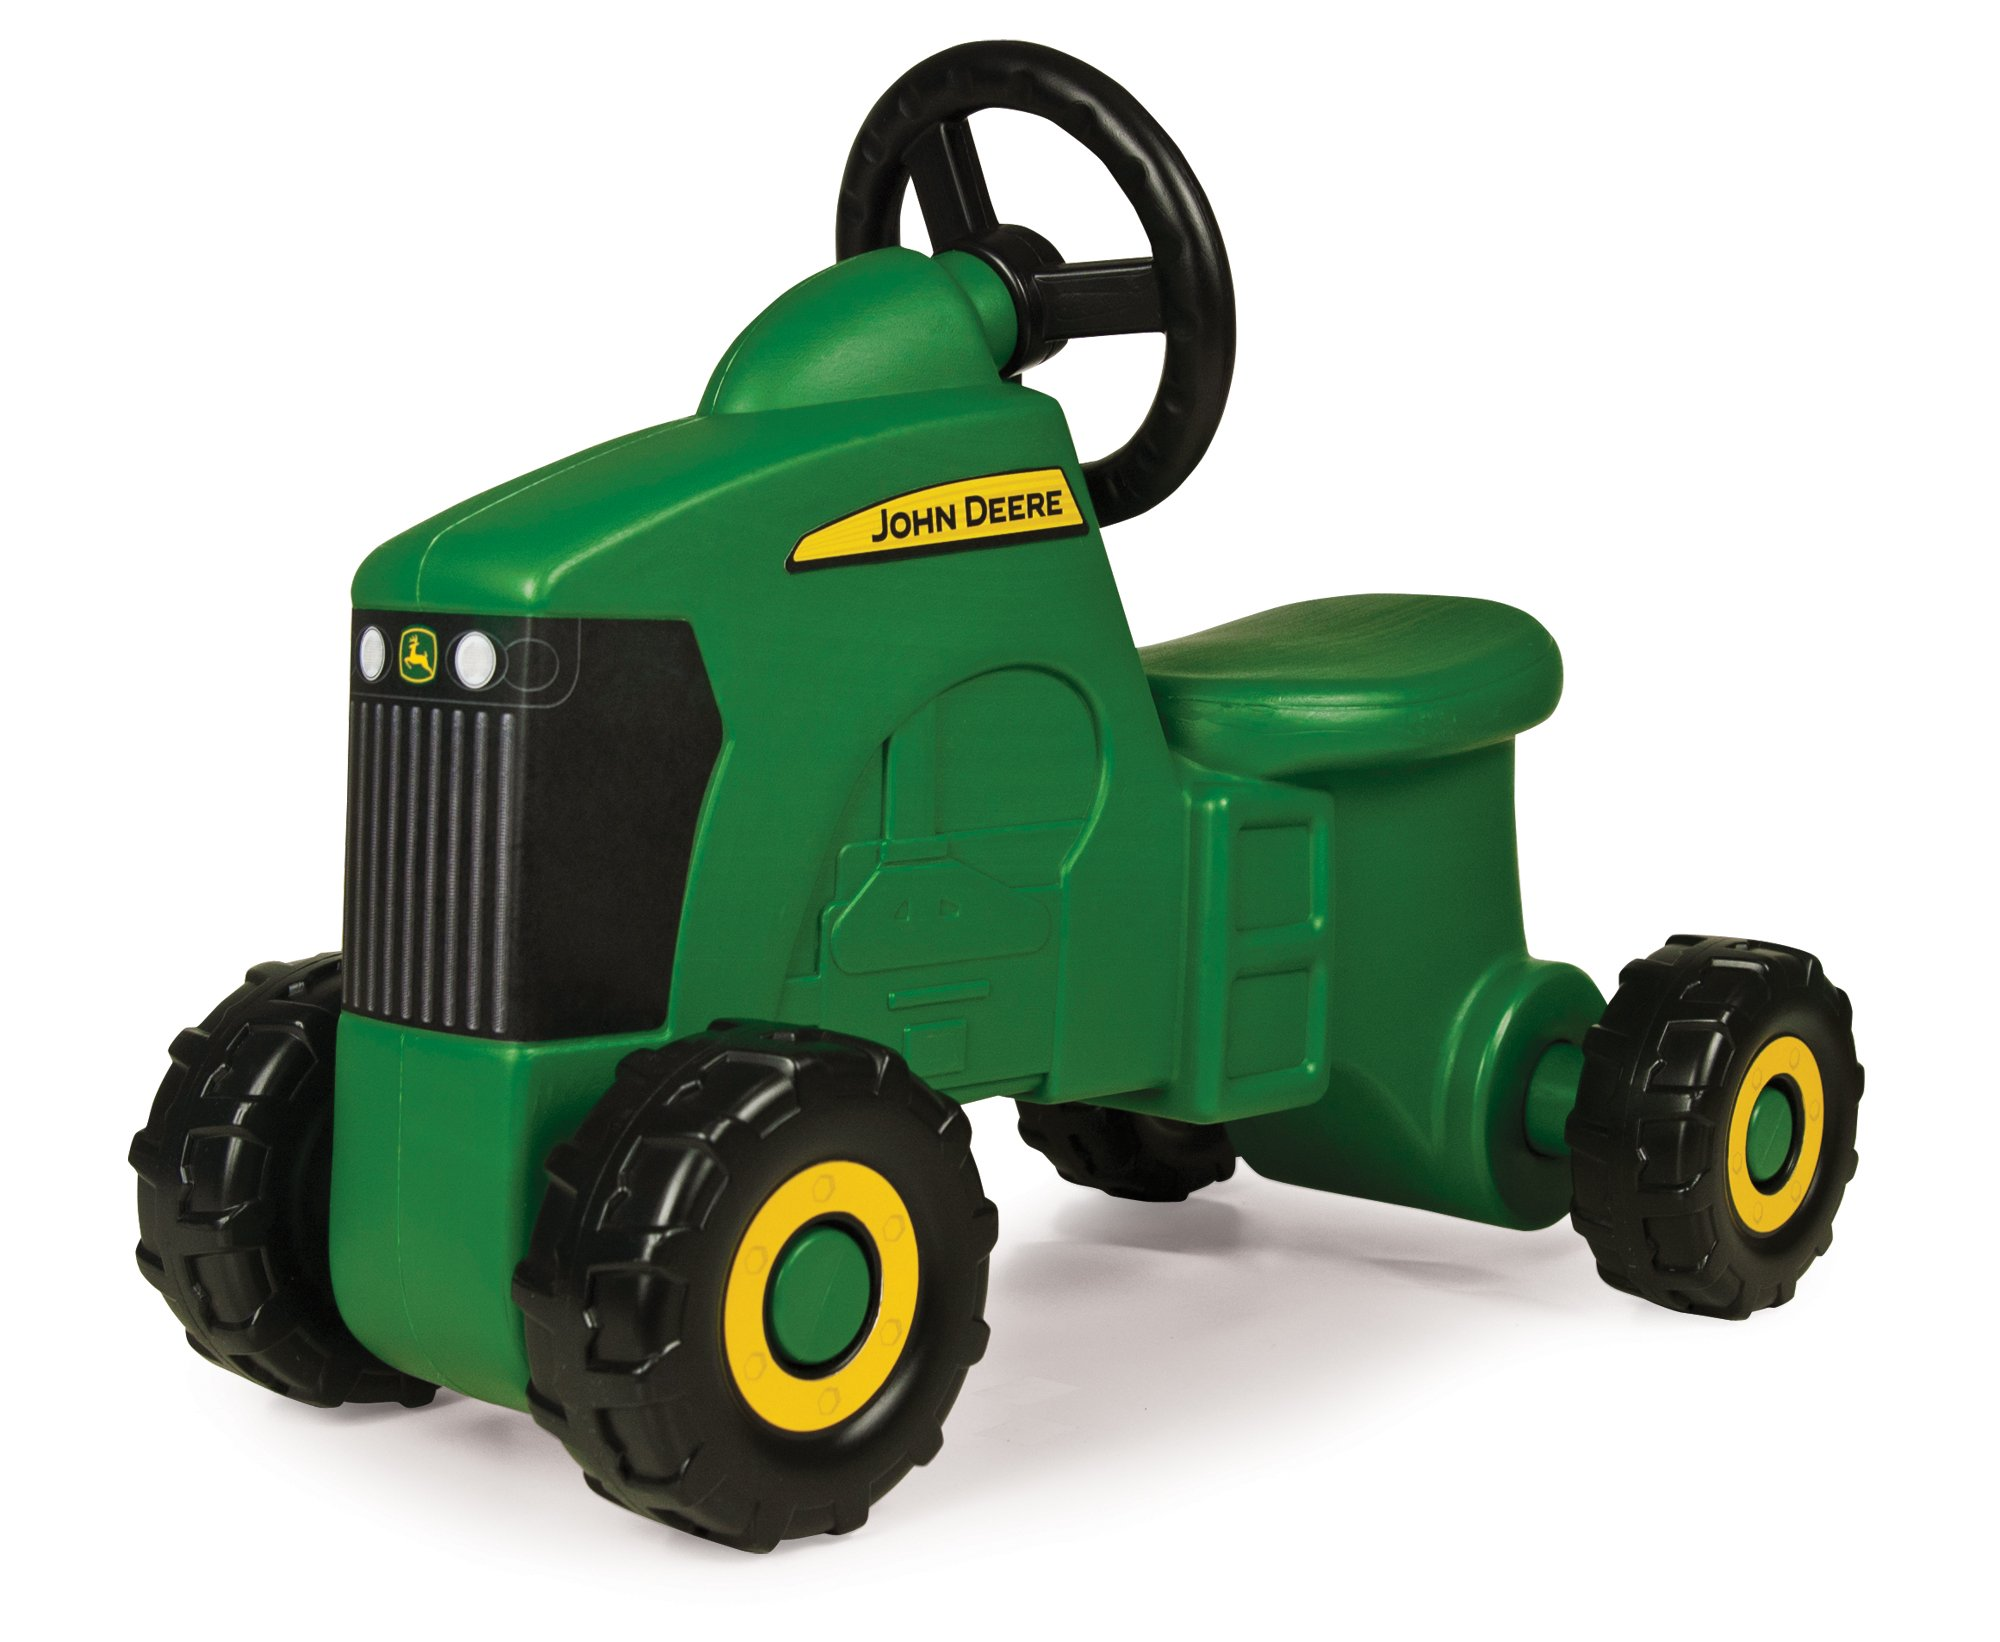 John Deere Ride On Toys >> Details About Sit N Scoot Tractor Kids John Deere Ride On Toys Farmer Toddler Play Gift New